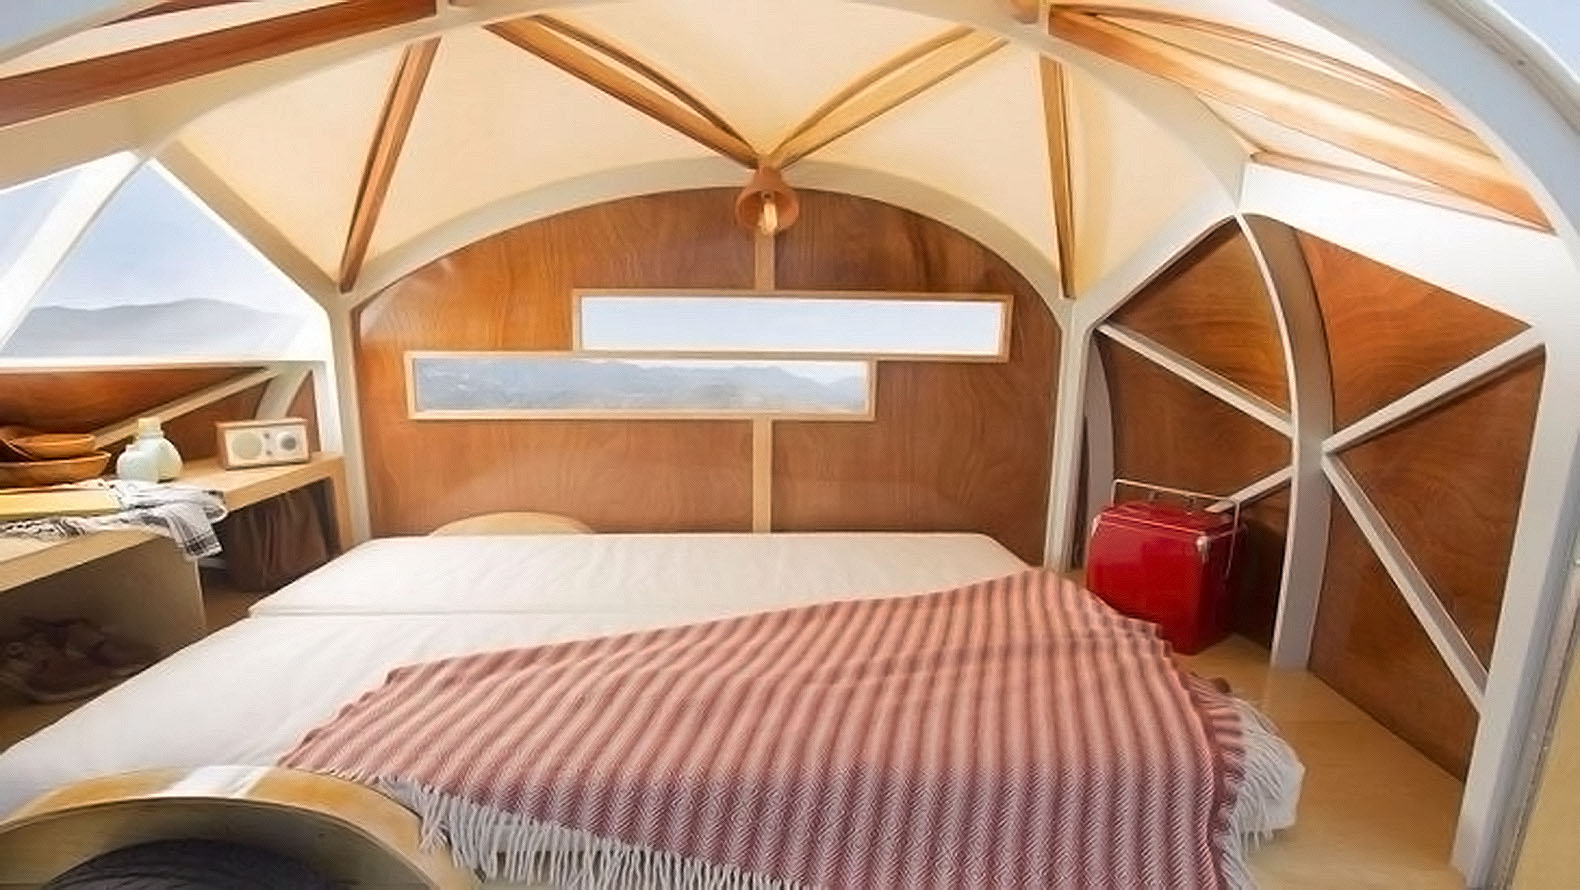 The Life Pod Is A 15 000 Dome Shaped Dream Home On Wheels